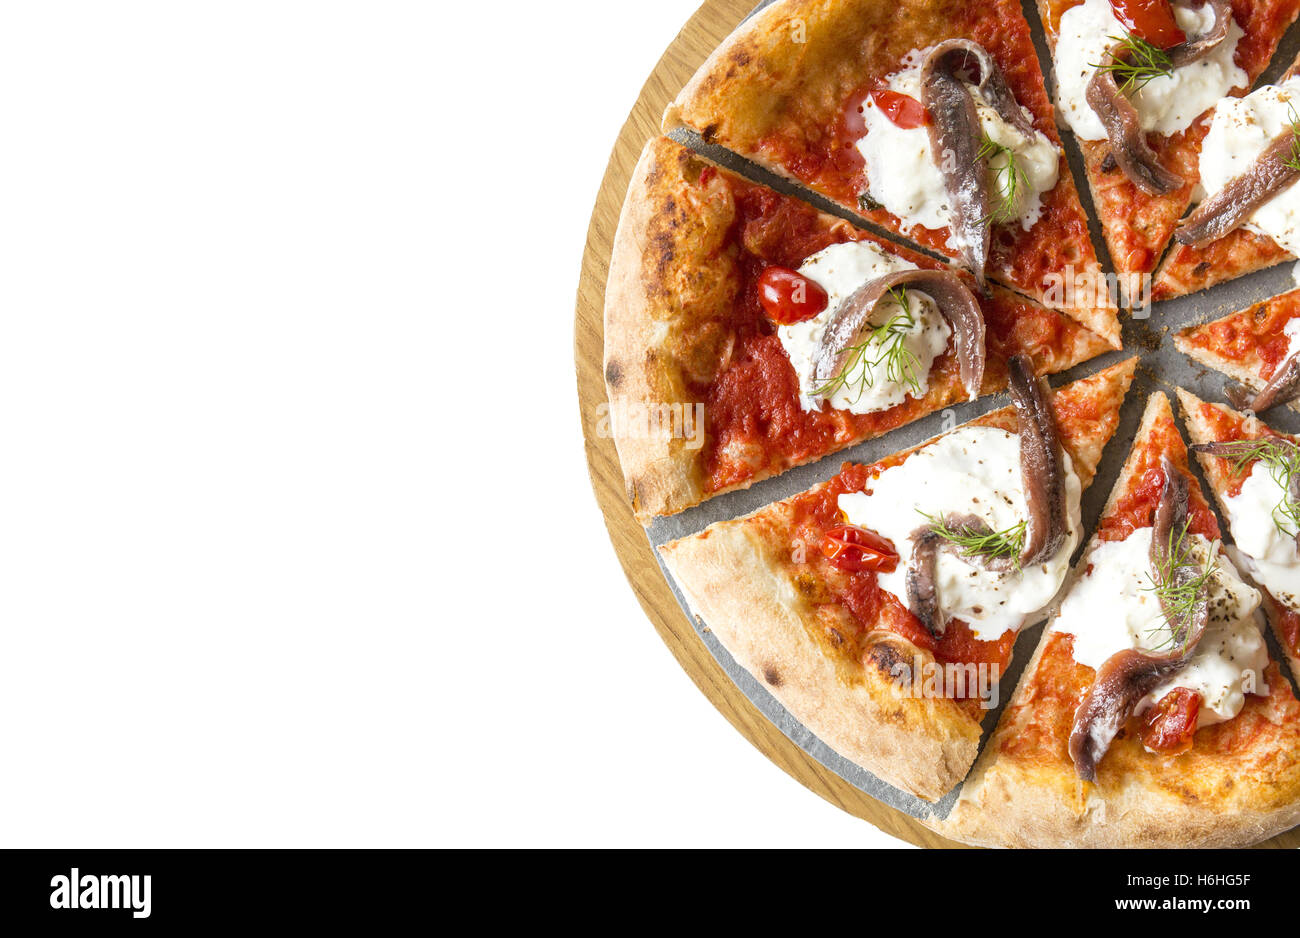 Rustic italian pizza on white background. - Stock Image